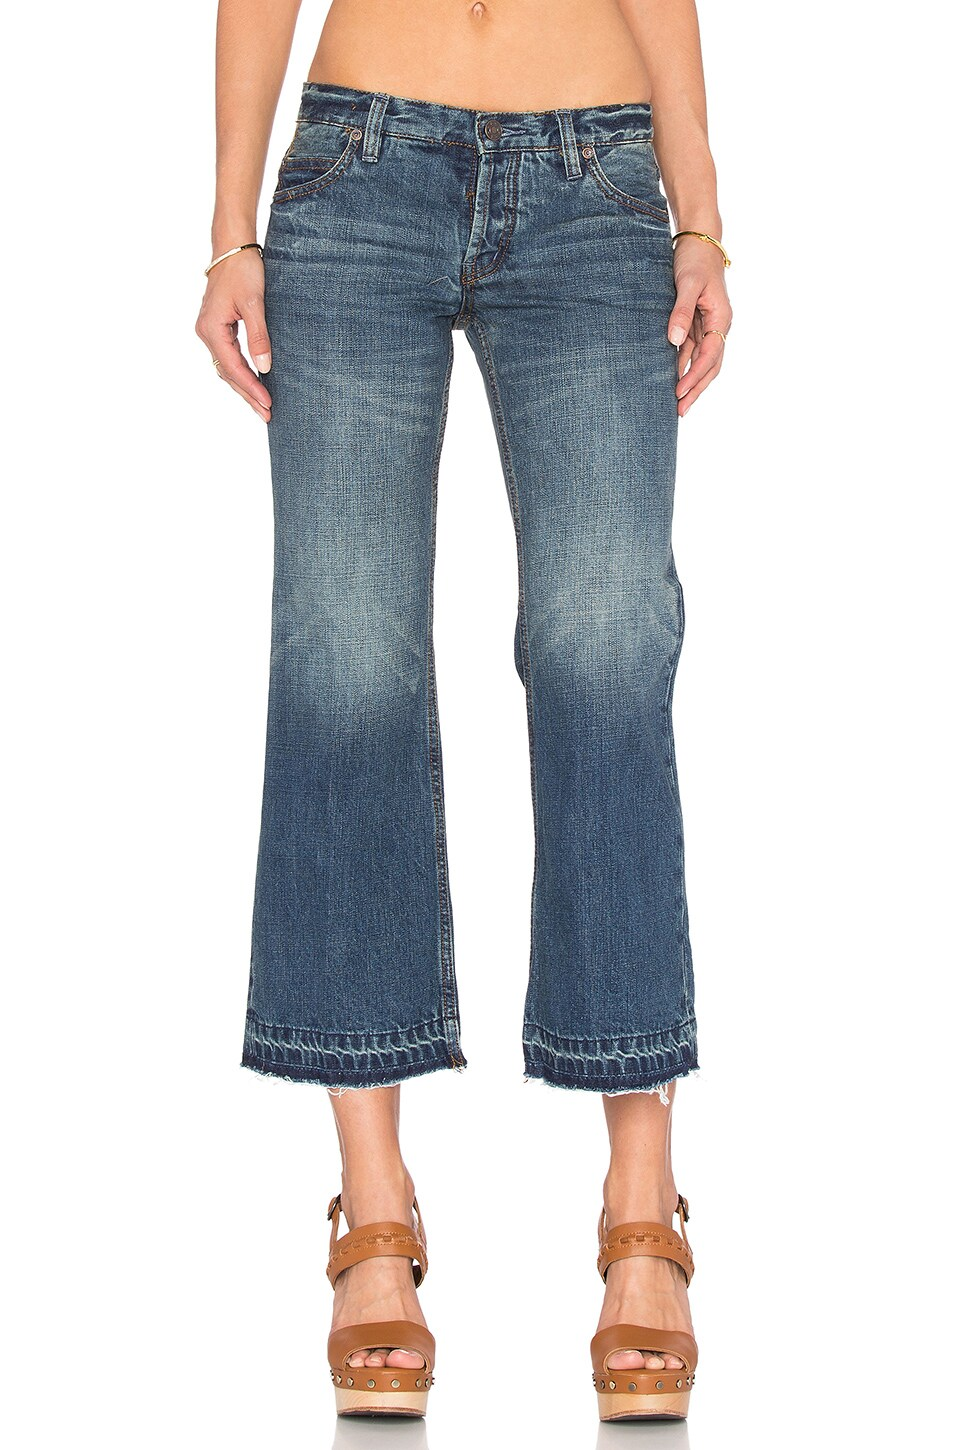 Free People Chelsea Crop Kick Flare Jean in Jacob